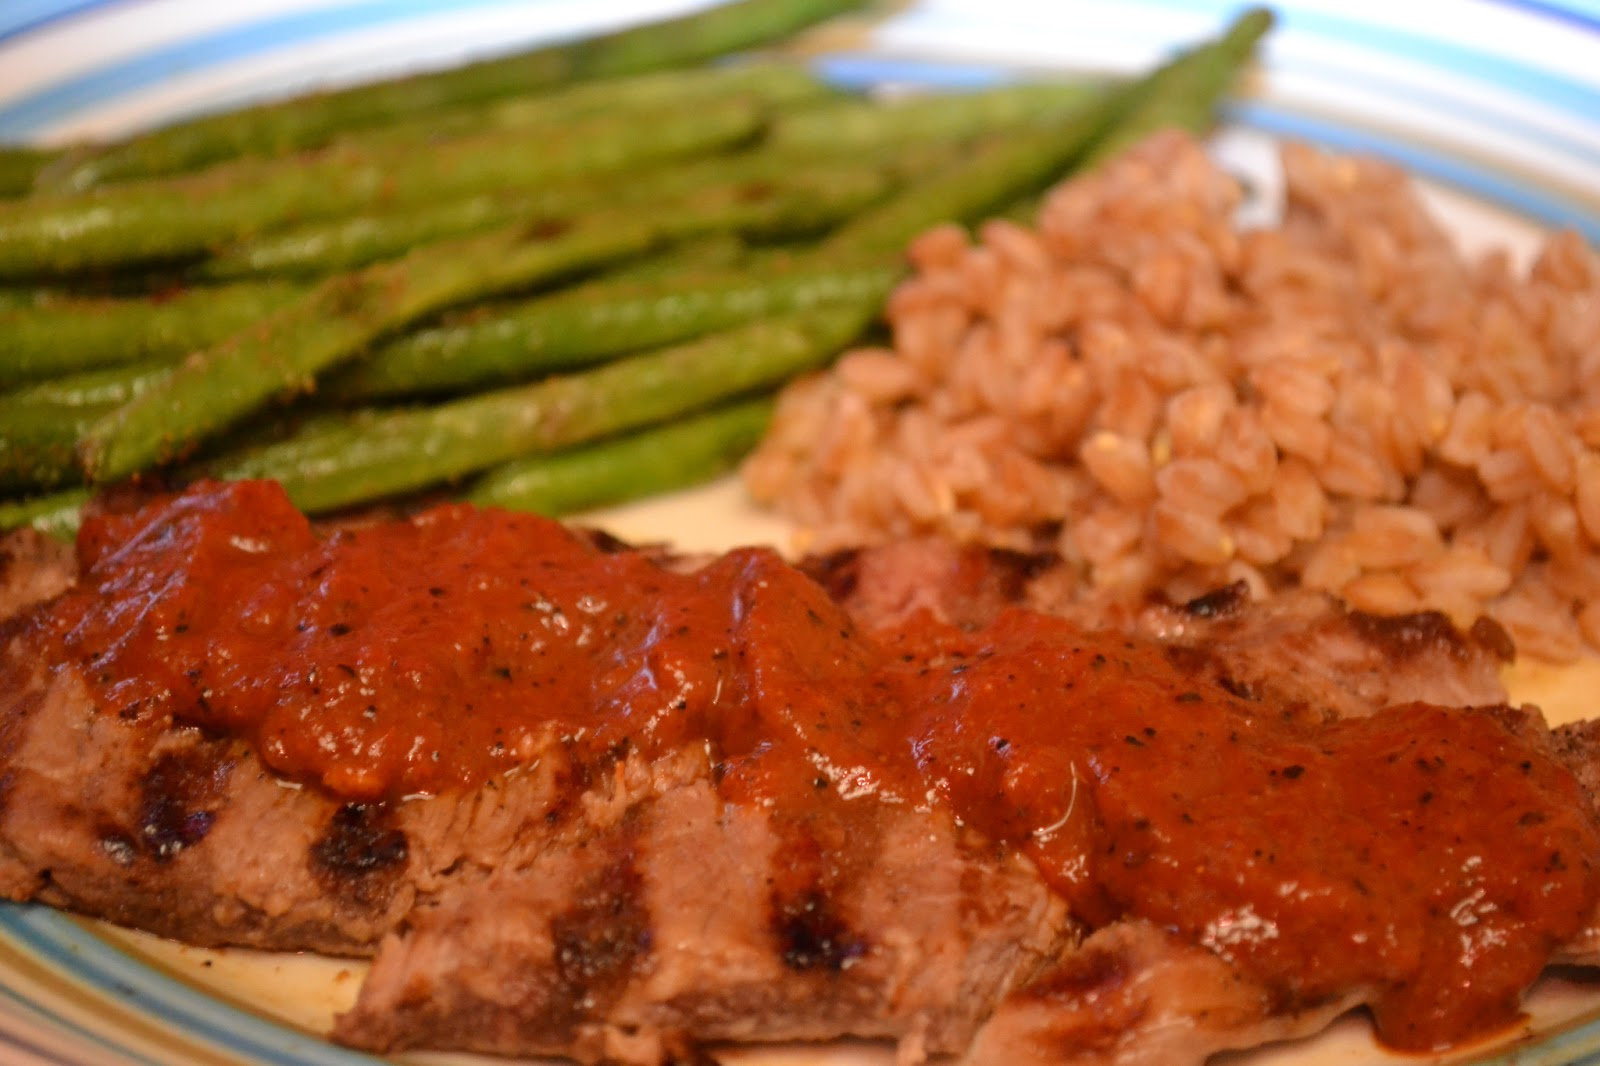 Gourmet, My Way: Spicy Charred Pepper Steak Sauce